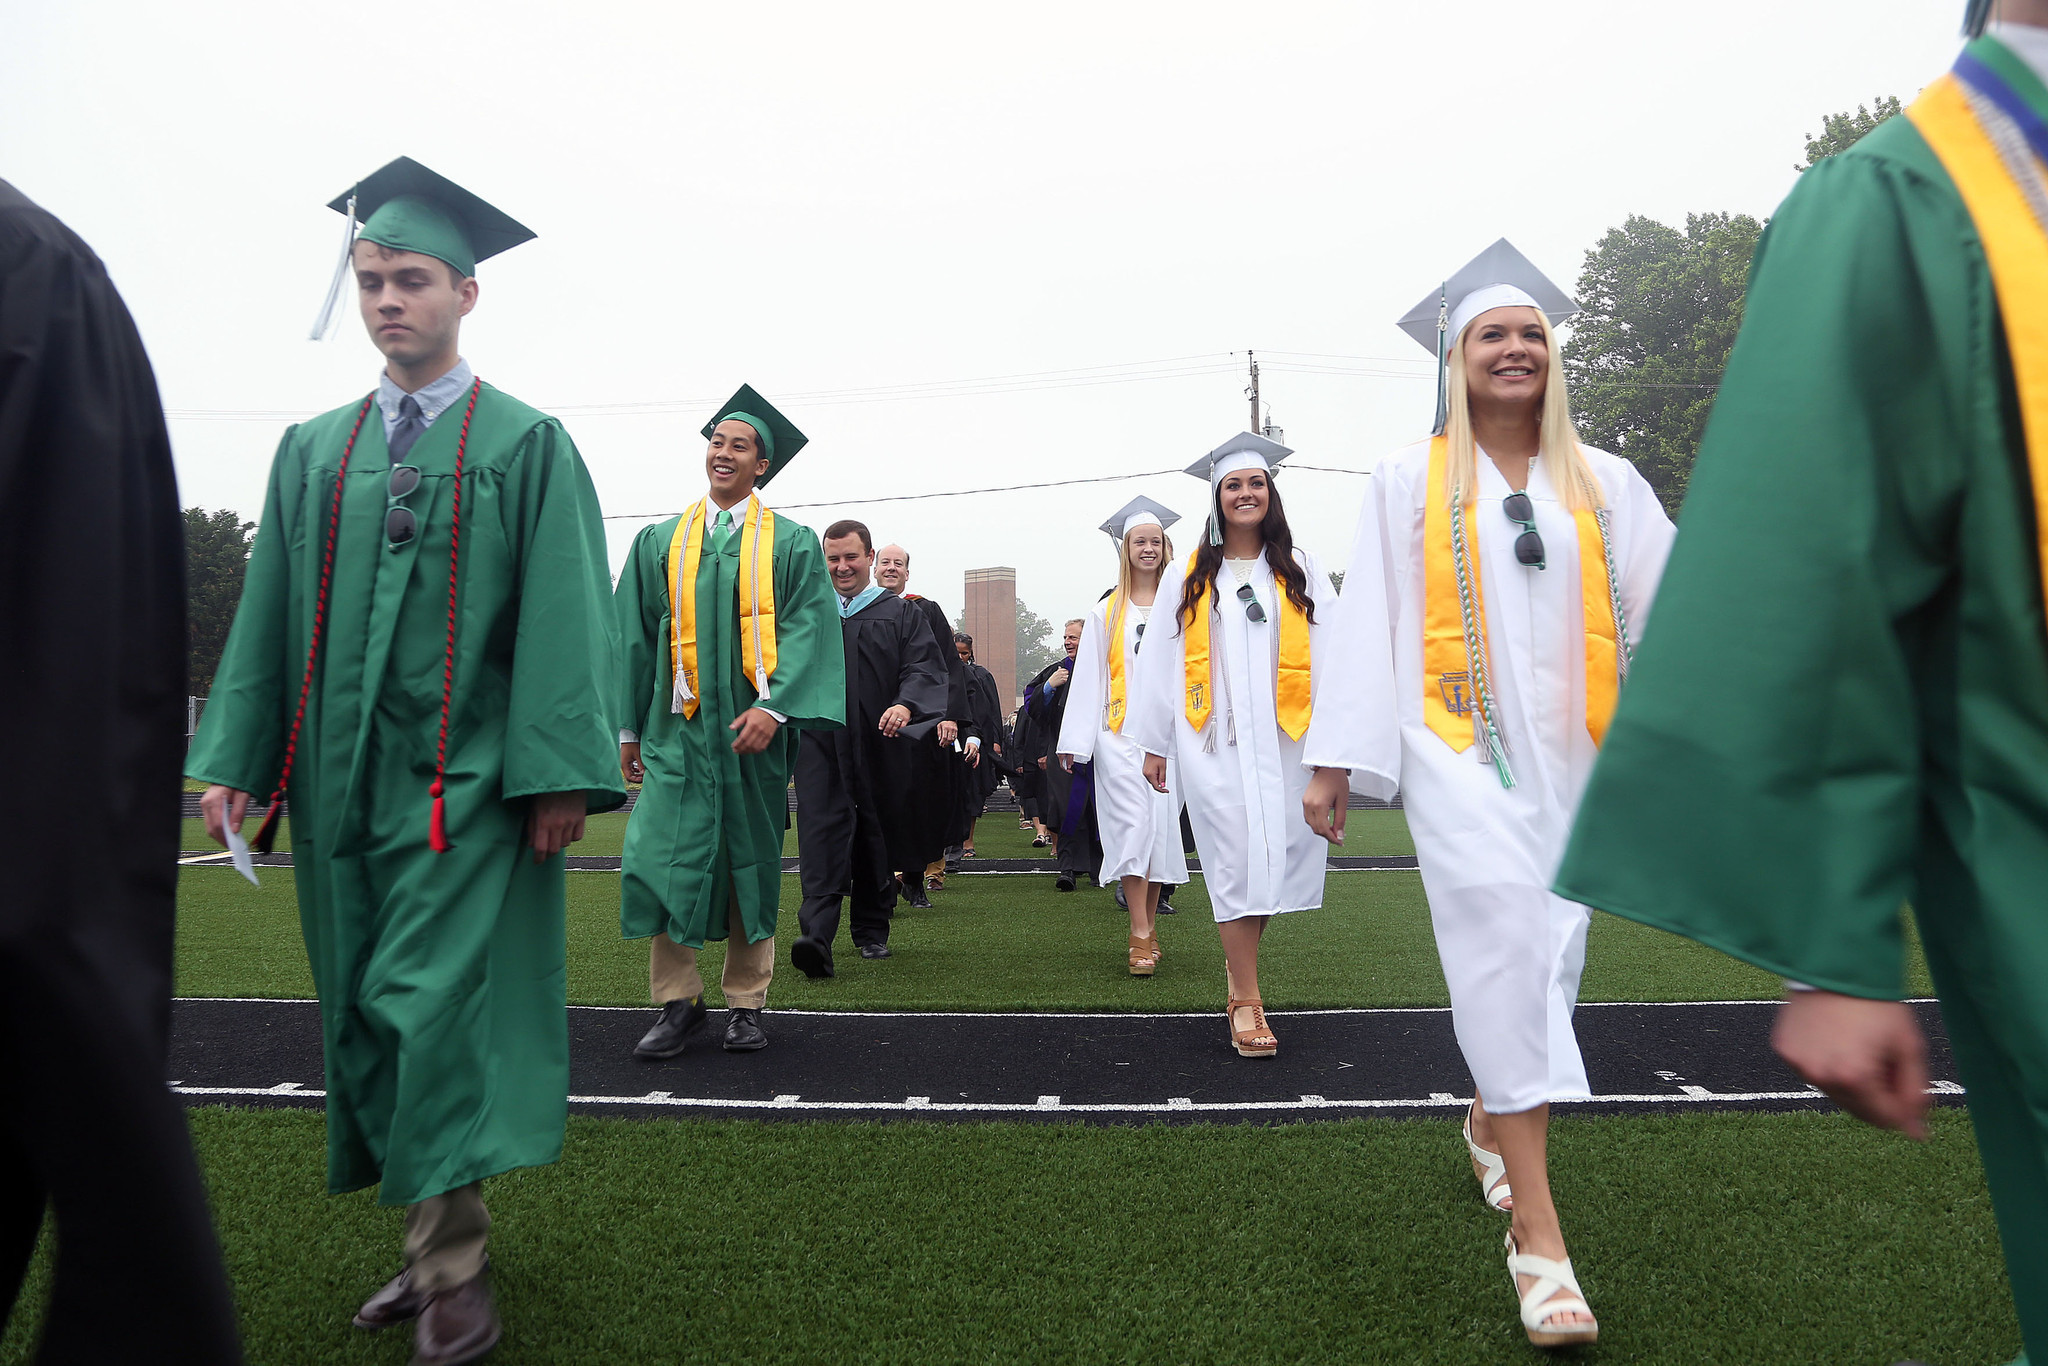 Arundel High School Class of 2016 graduation - Capital Gazette